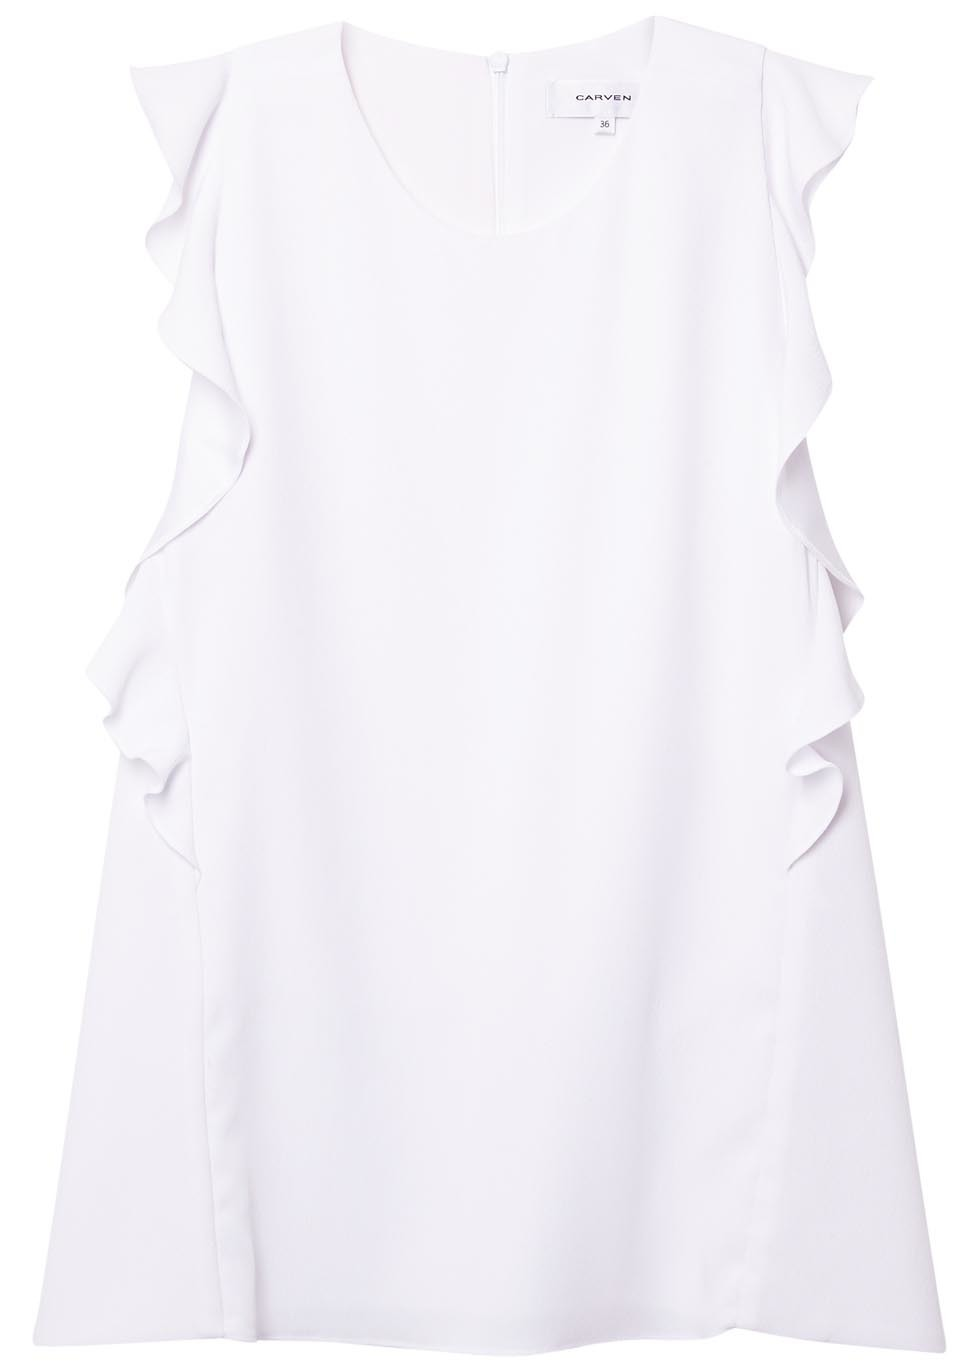 White Ruffled Top - pattern: plain; sleeve style: sleeveless; shoulder detail: tiers/frills/ruffles; predominant colour: white; occasions: casual; length: standard; style: top; fibres: polyester/polyamide - 100%; fit: body skimming; neckline: crew; sleeve length: sleeveless; bust detail: tiers/frills/bulky drapes/pleats; pattern type: fabric; texture group: other - light to midweight; season: s/s 2016